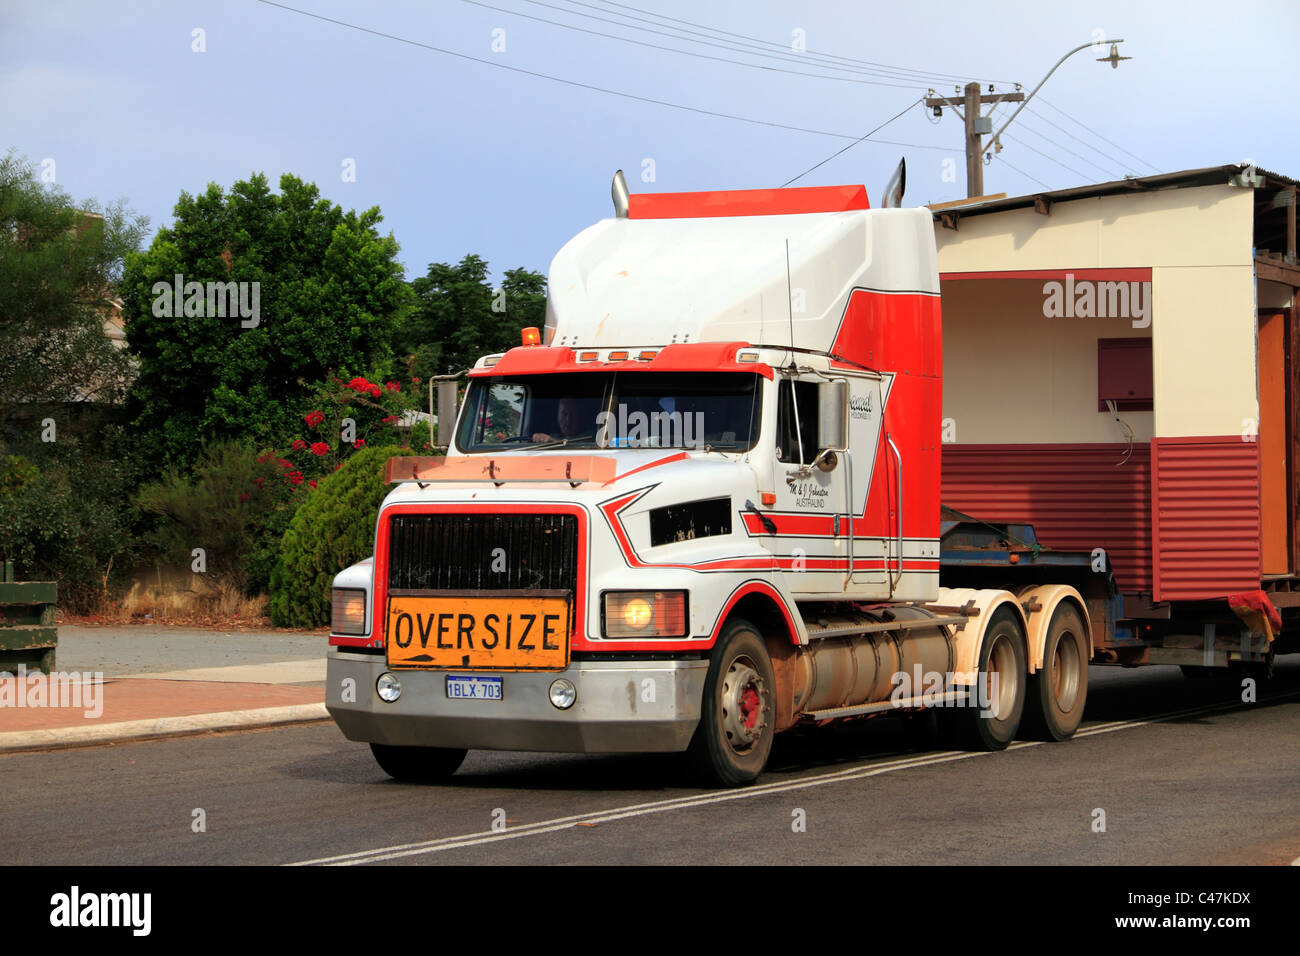 Prime mover truck with oversize sign, Carnamah Western Australia - Stock Image